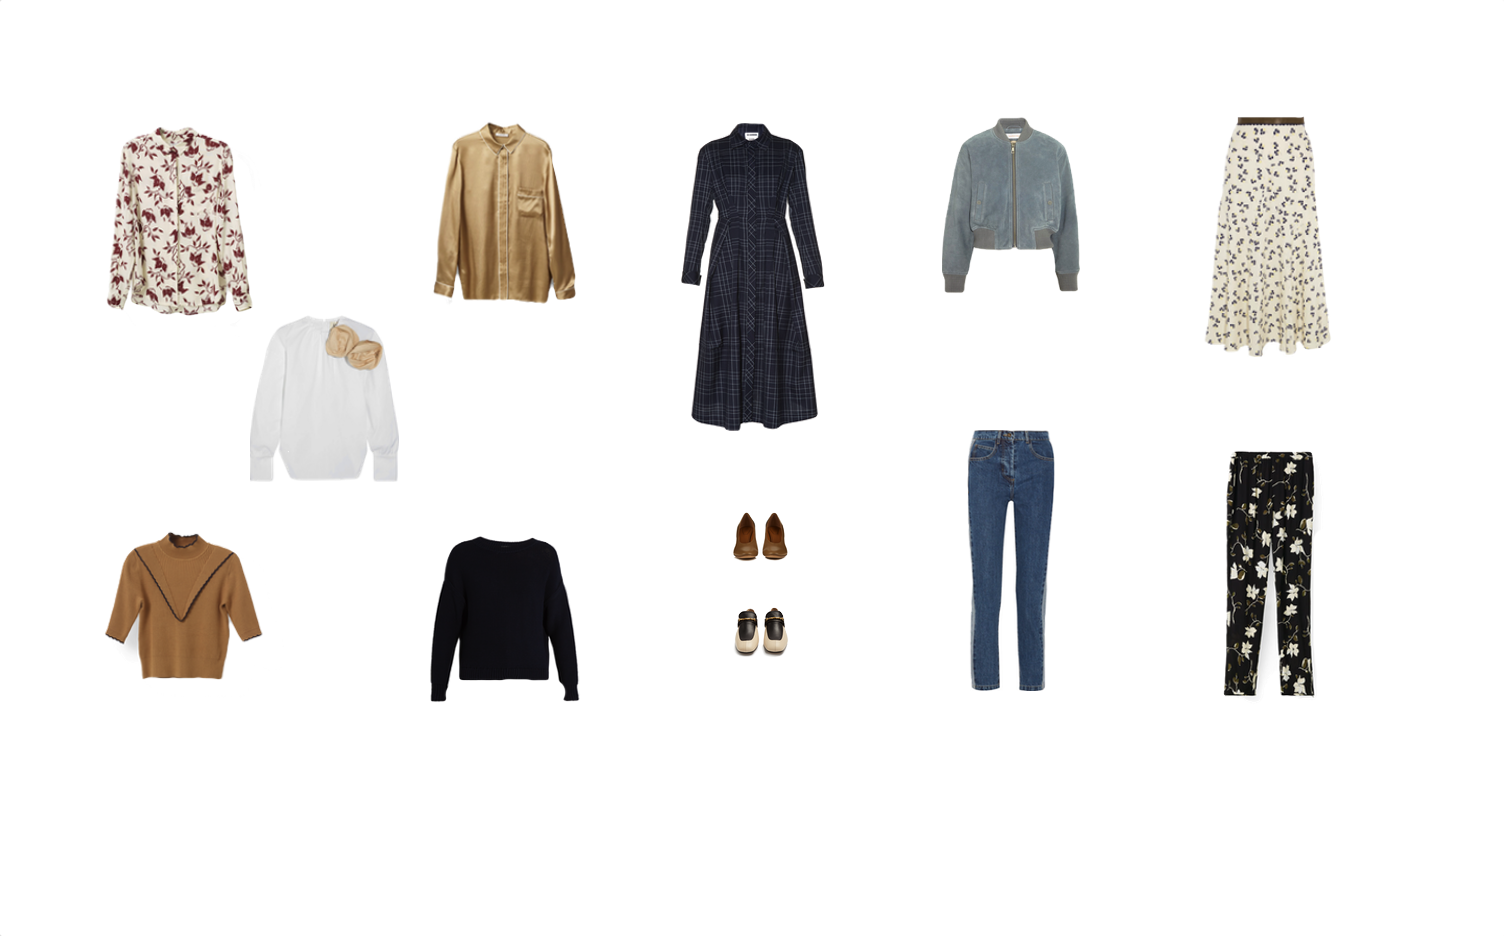 Capsule Wardrobe for the Pear Body shape